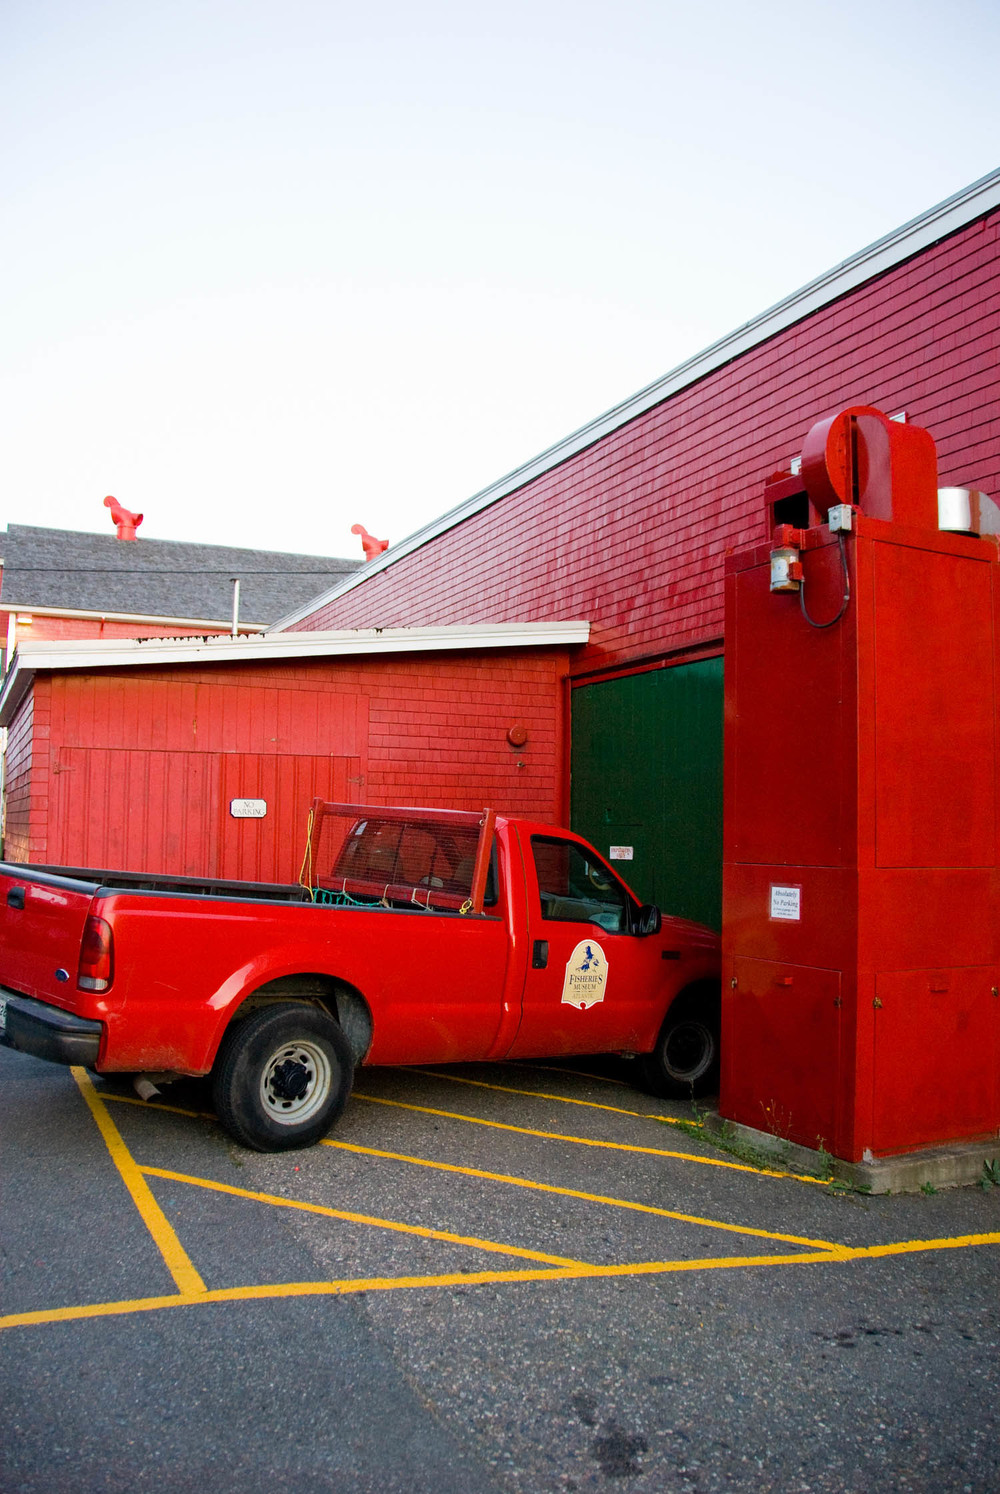 Red Truck Red Building